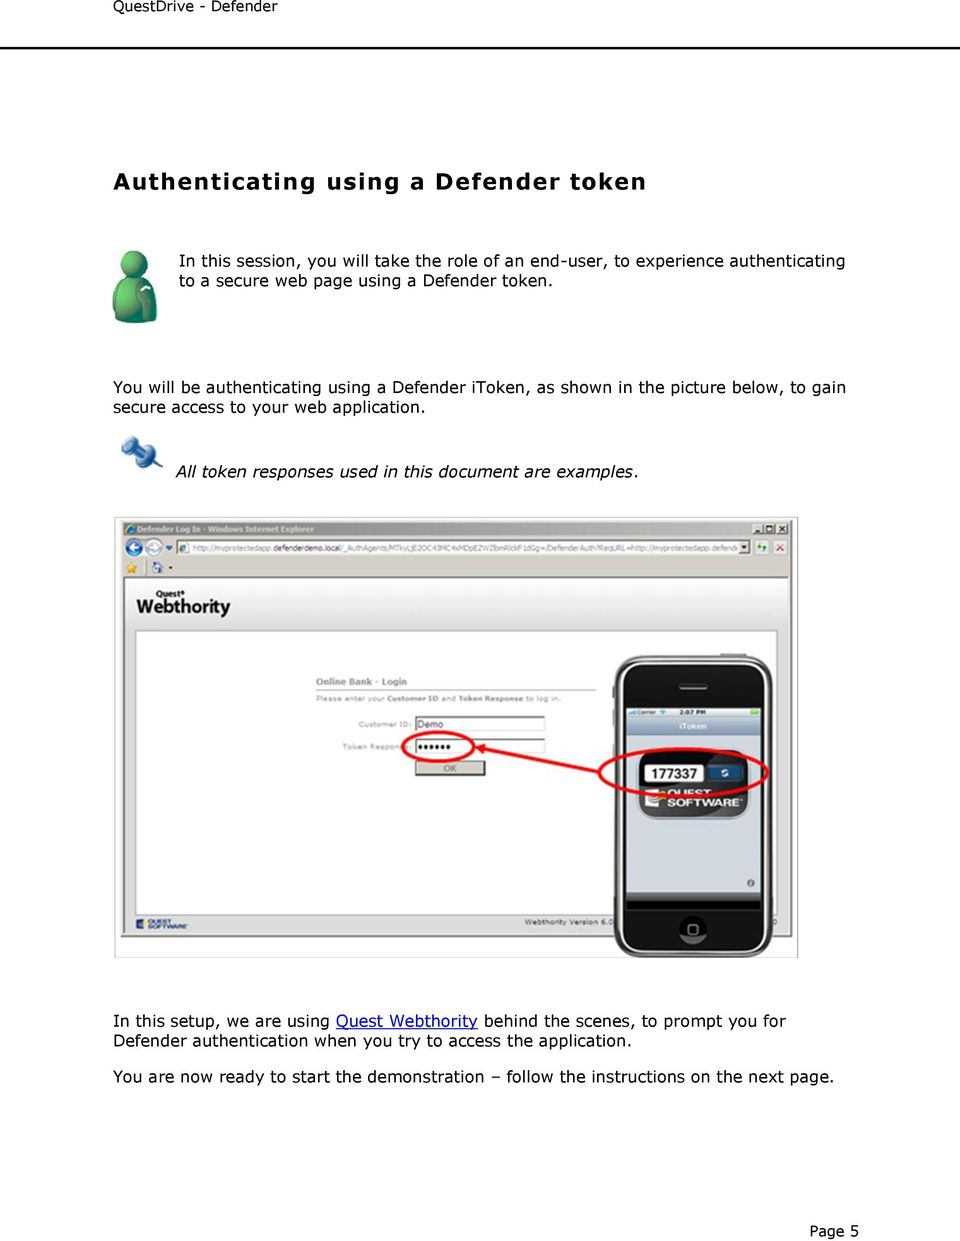 You will be authenticating using a Defender itoken, as shown in the picture below, to gain secure access to your web application.